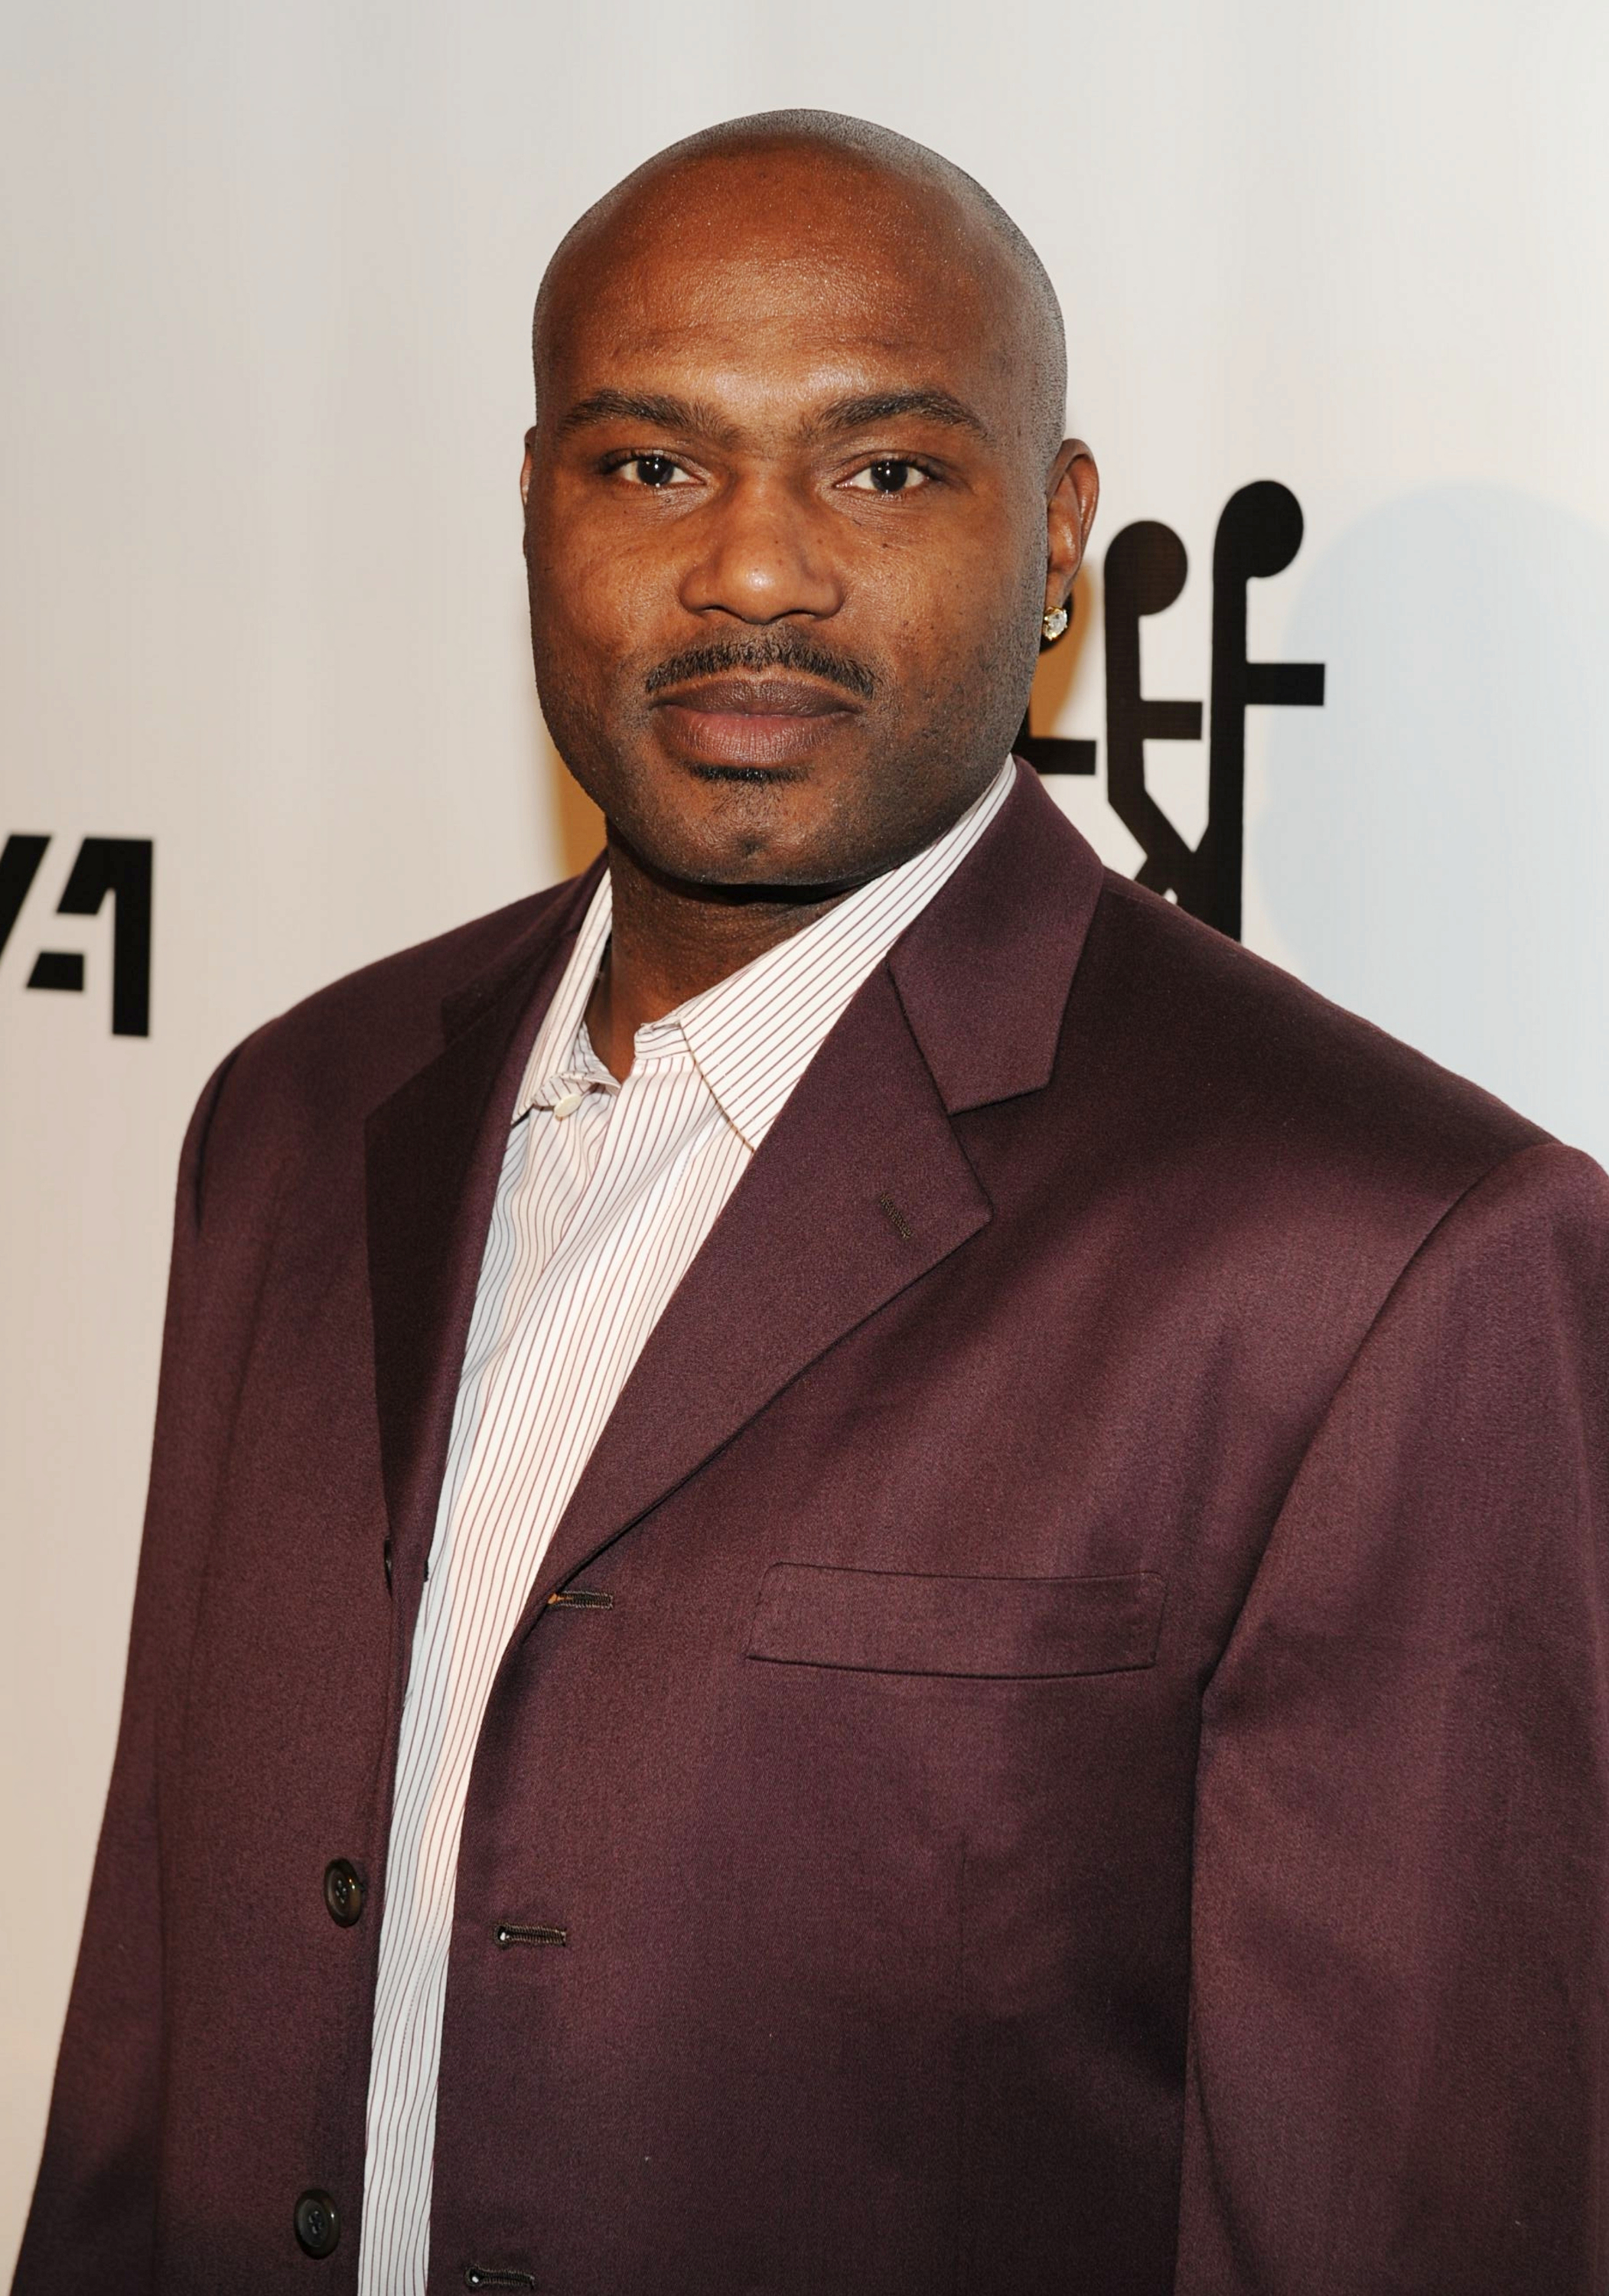 NEW YORK - OCTOBER 6:  Former NBA player Tim Hardaway attends The 24th Annual Great Sports Legends Dinner benefiting The Buoniconti Fund to Cure Paralysis (national fundraising arm of The Miami Project to Cure Paralysis) at The Waldorf-Astoria on October